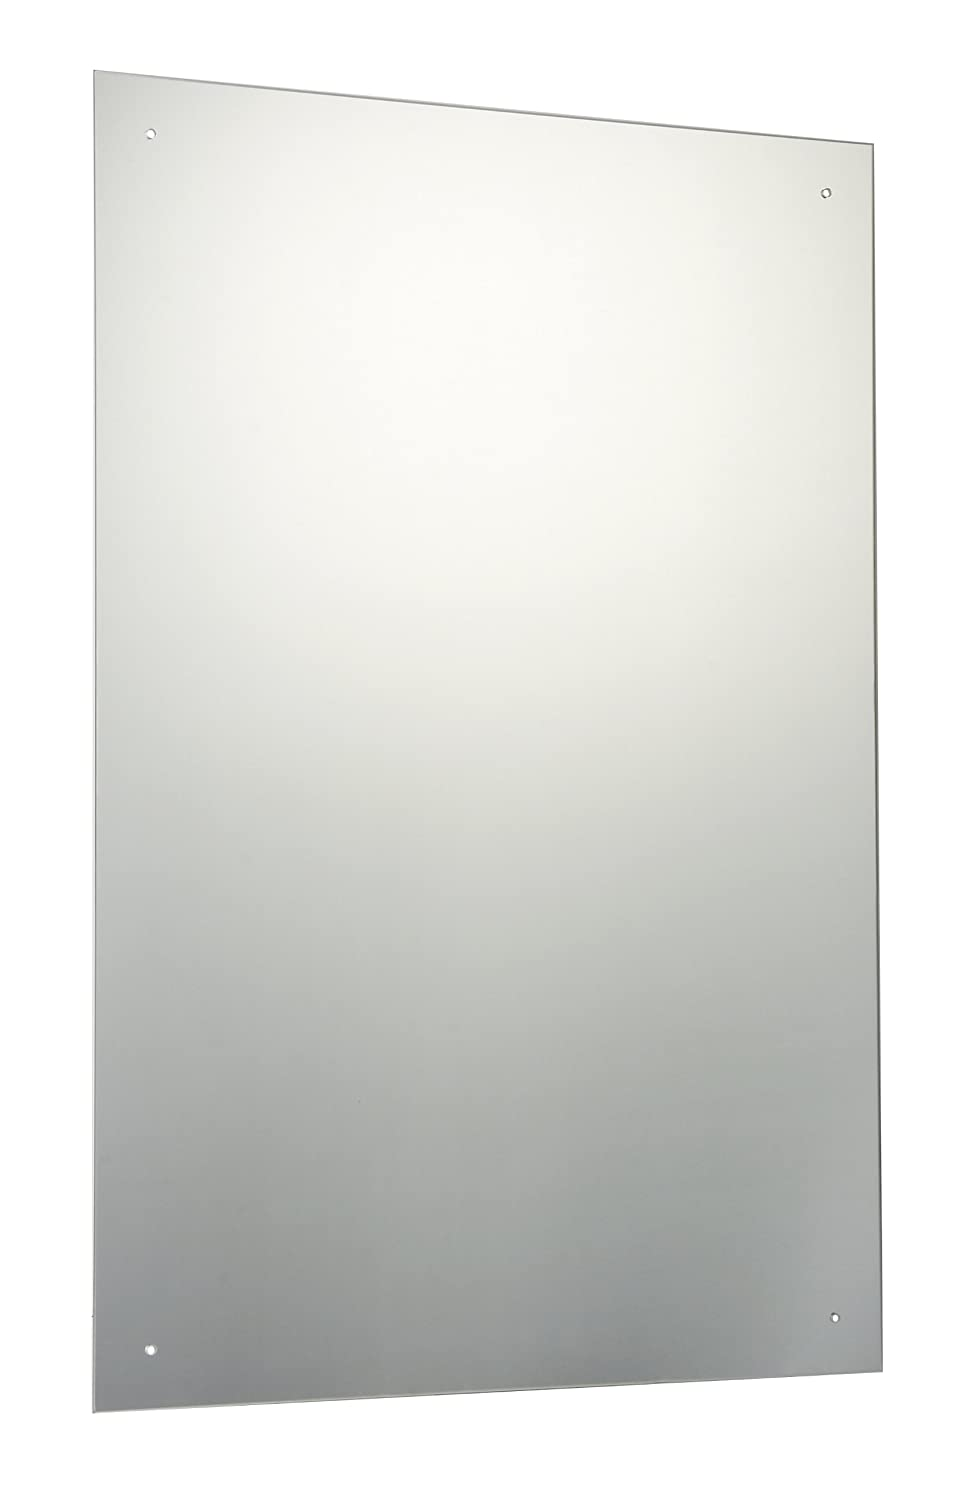 90 x 60cm Rectangle Bathroom Mirror with Drilled Holes & Chrome Cap Wall Hanging Fixing Kit